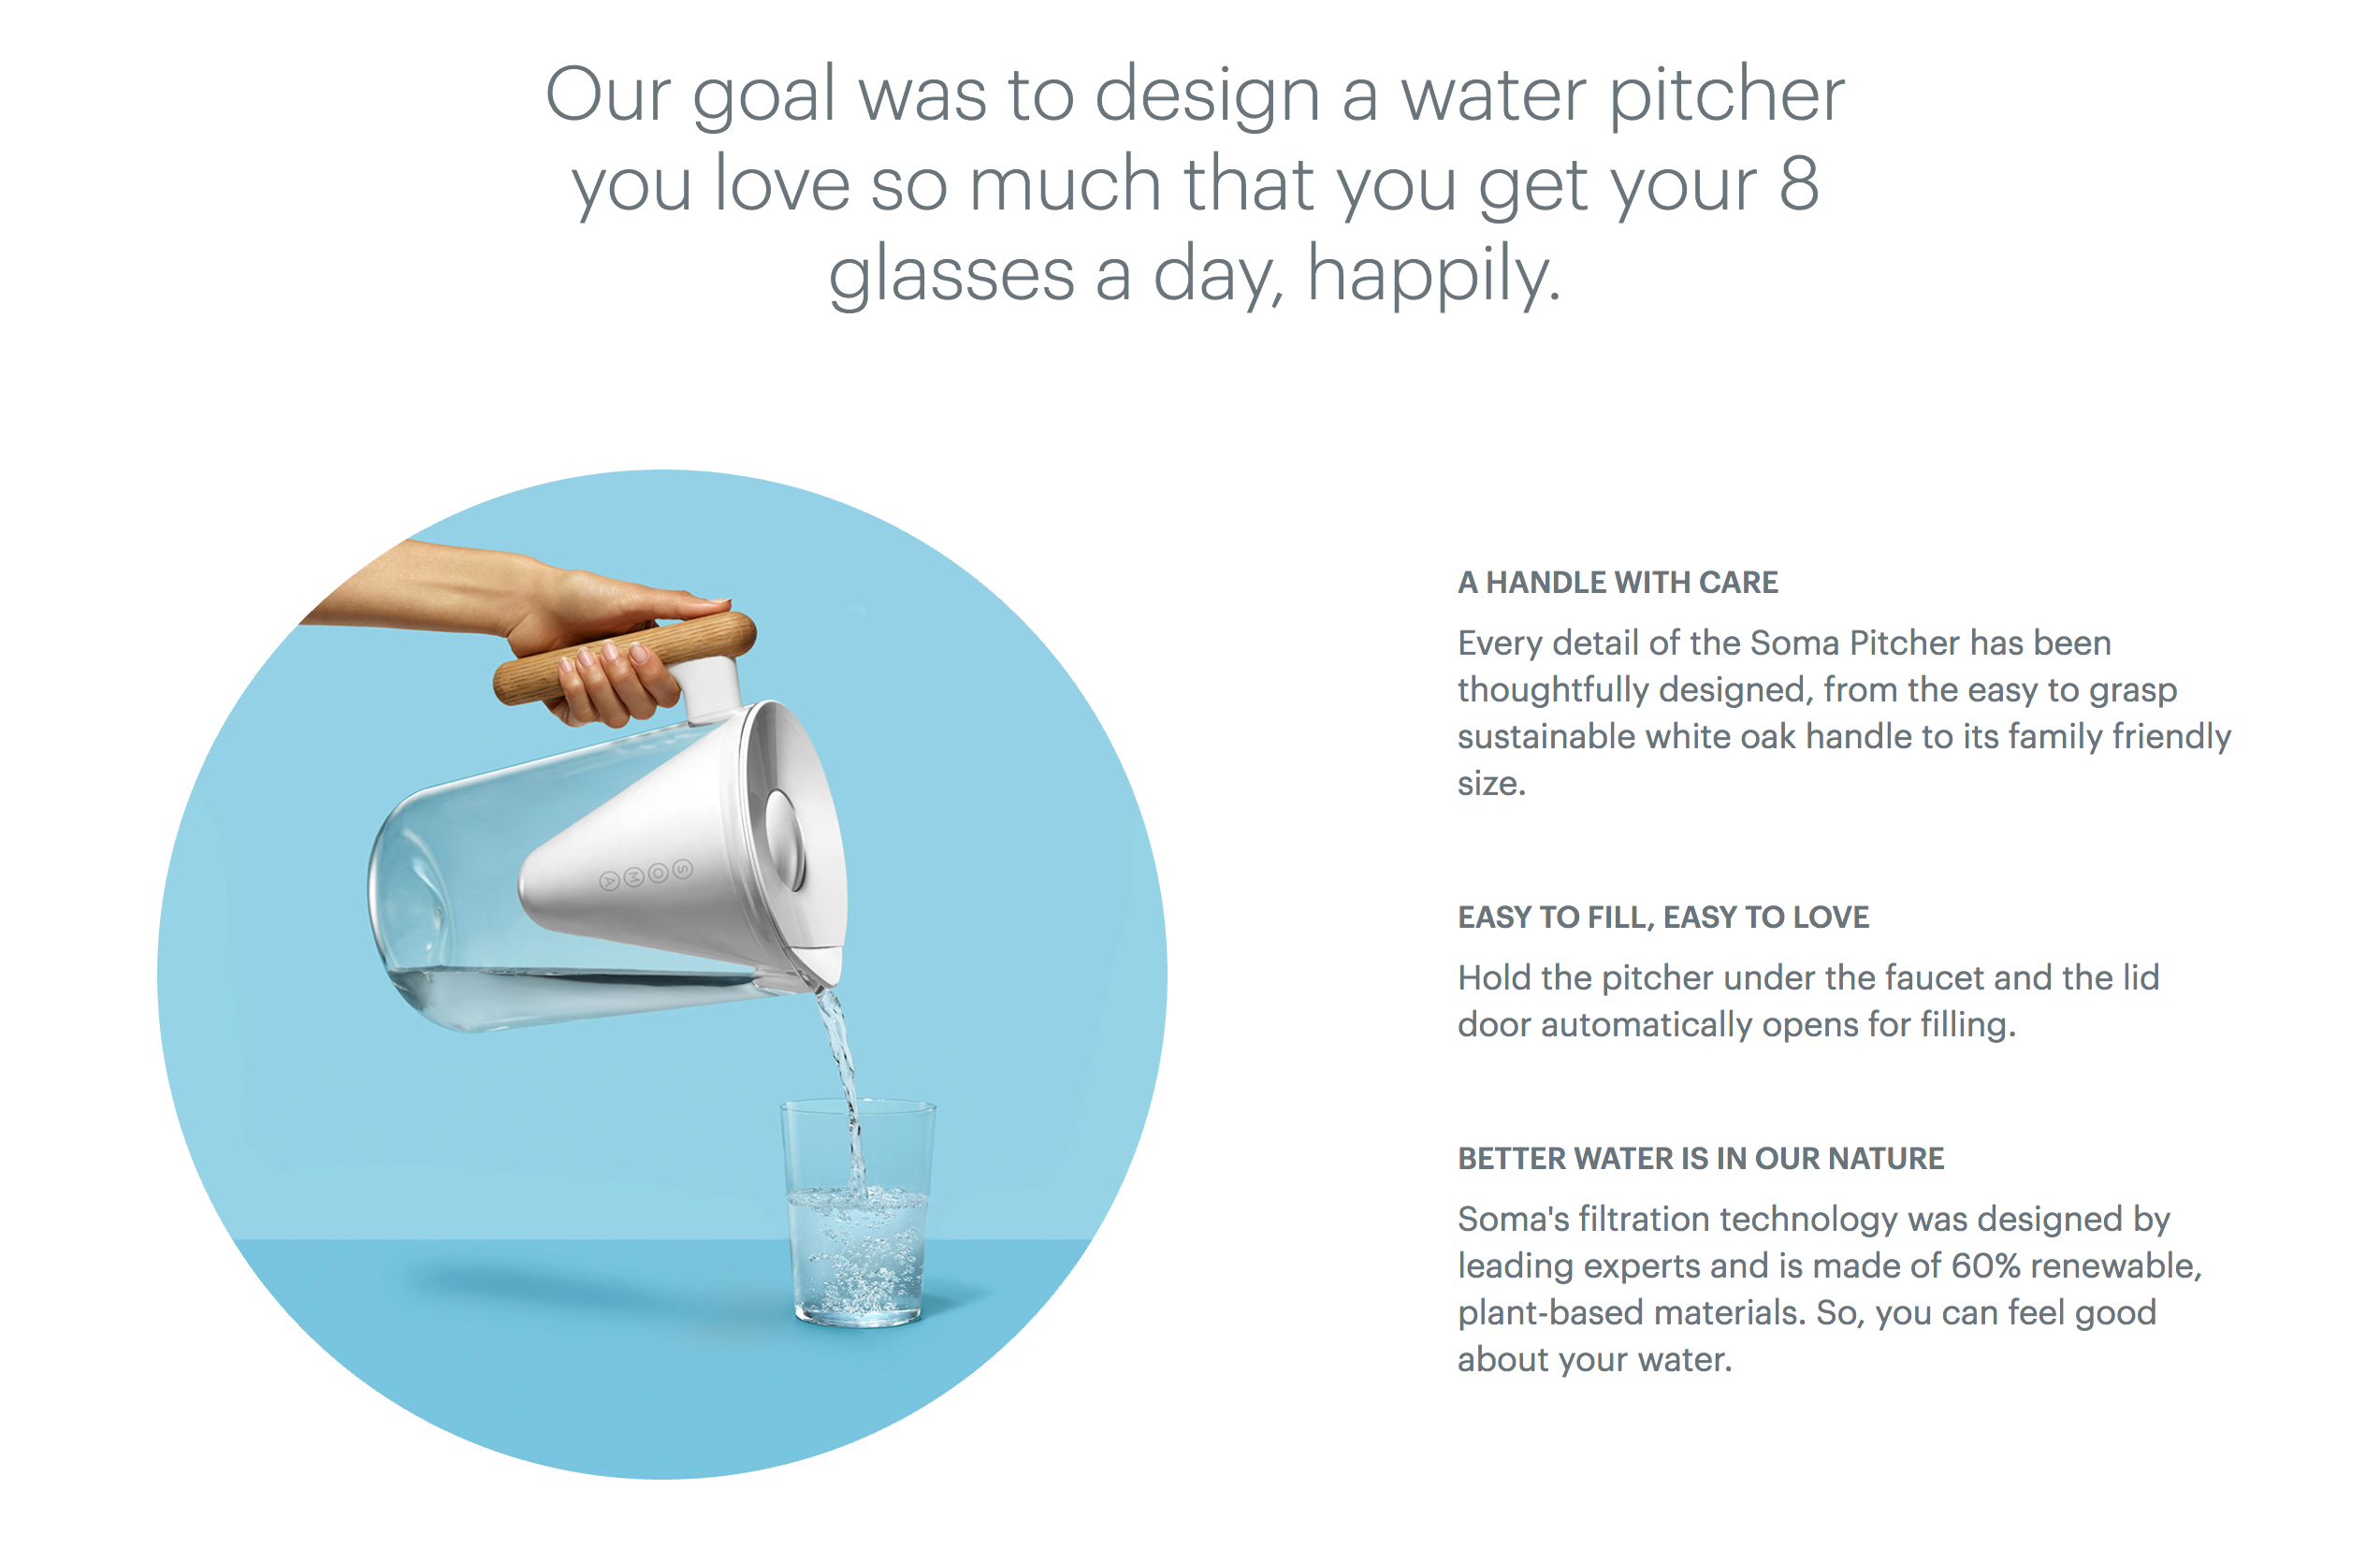 soma-water-filter-pitcher-03